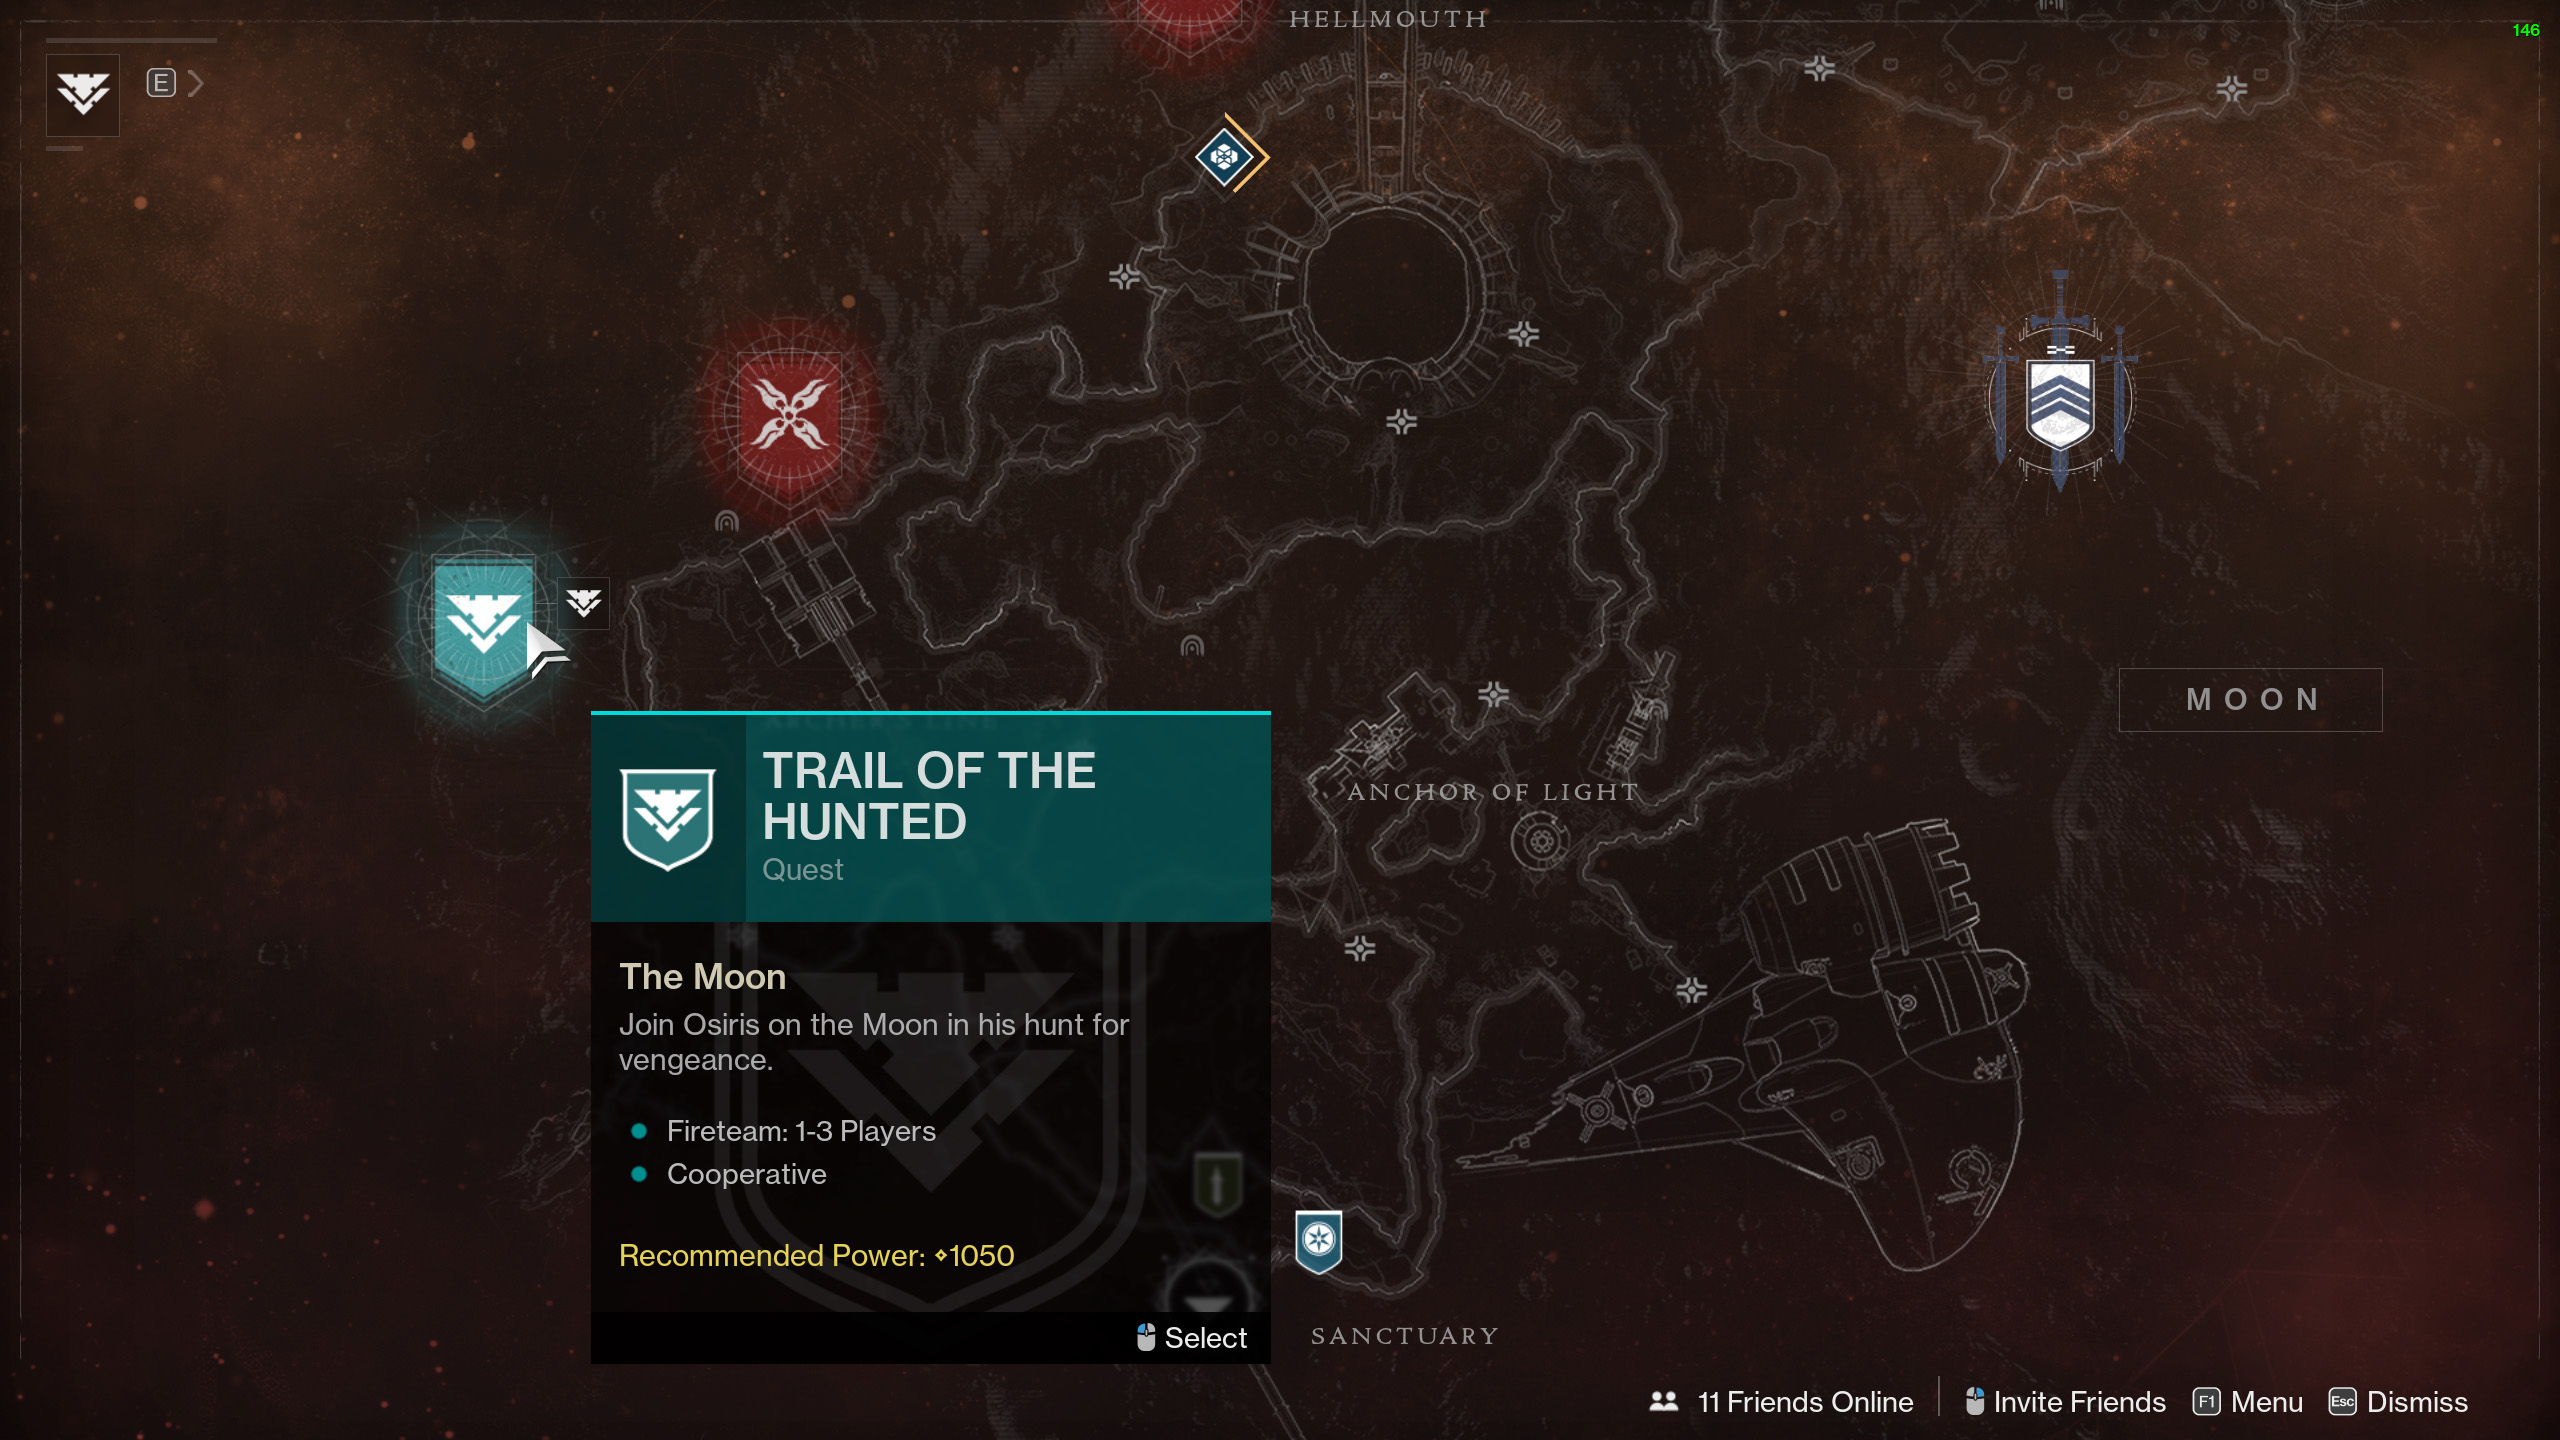 Destiny 2 Trail of the Hunted